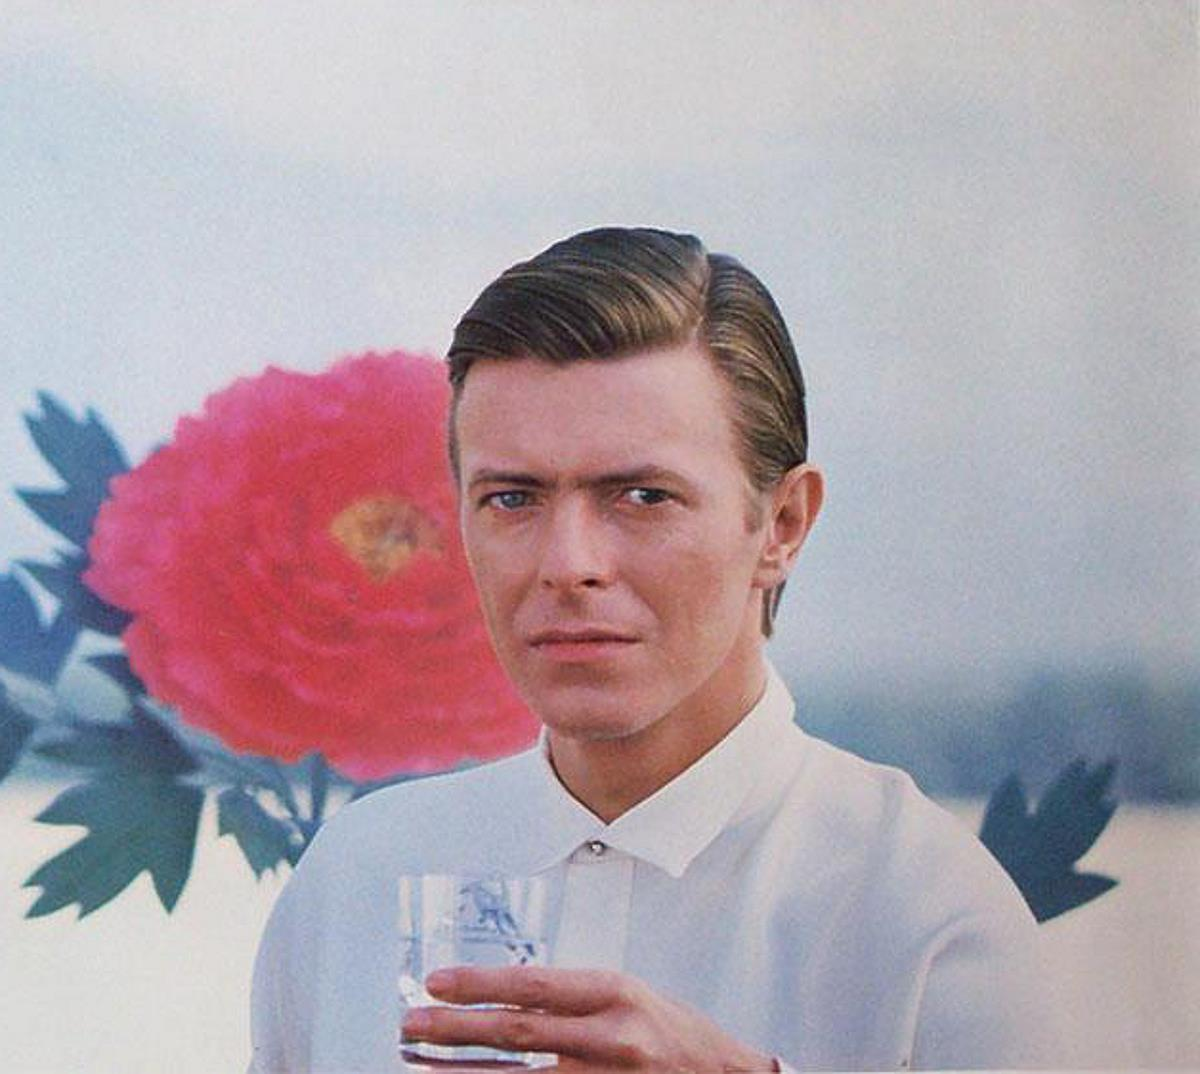 David Bowie - Still from the TV advert for Crystal Jun Rock